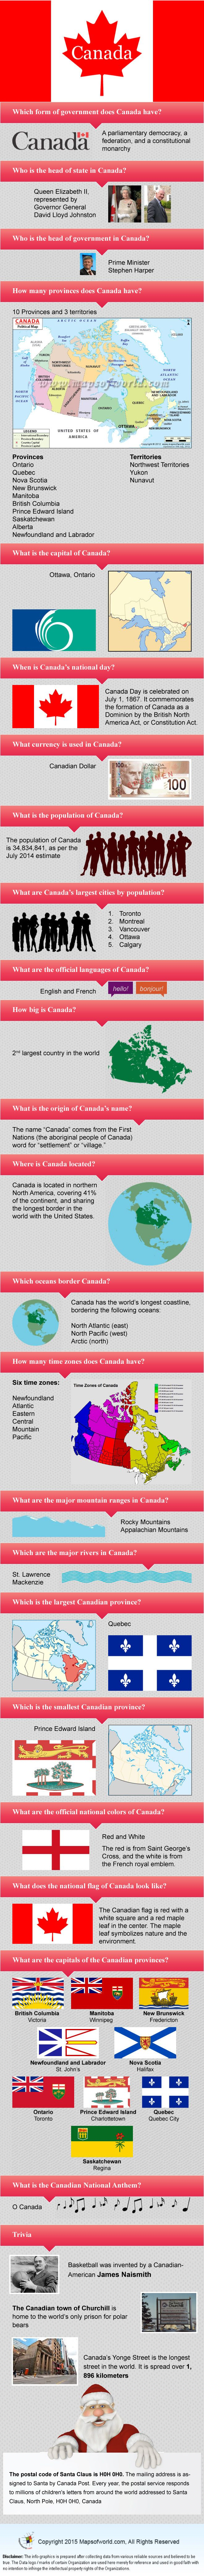 On July 1, Canada Day was celebrated by scores of Canadians from Coast to Coast. Here is a great #infographic to help you find out interesting and useful trivia about #Canada! http://www.mapsofworld.com/infographics/fast-facts/infographic-of-canada-fast-facts.html